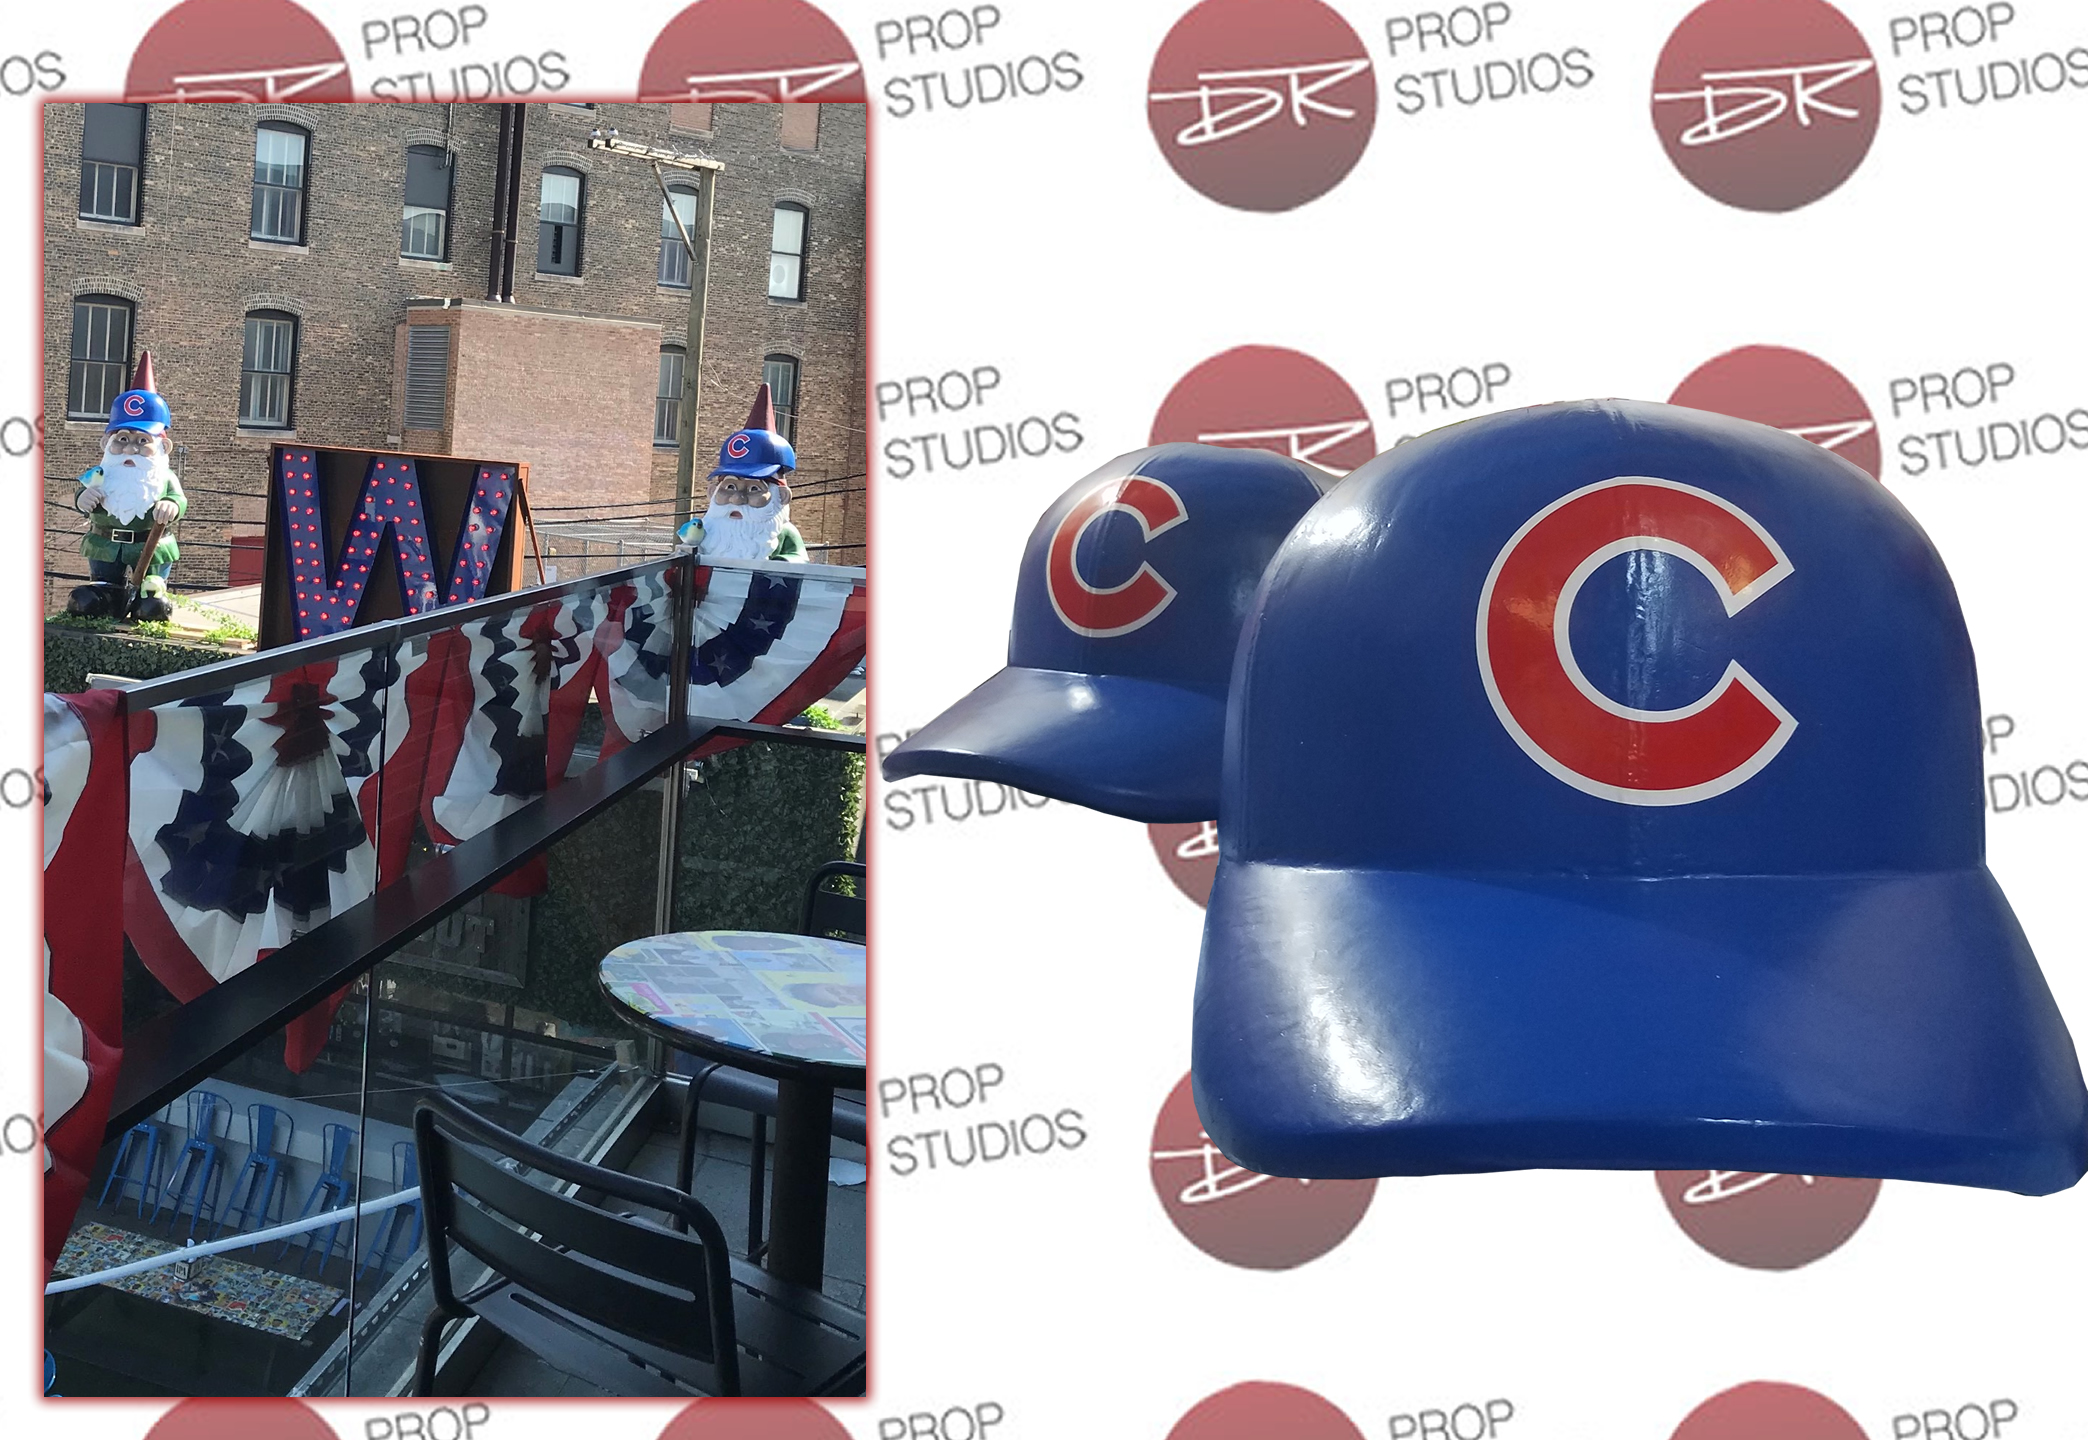 Large Scenic Baseball Caps on Gnome for Restaurant Display Prop